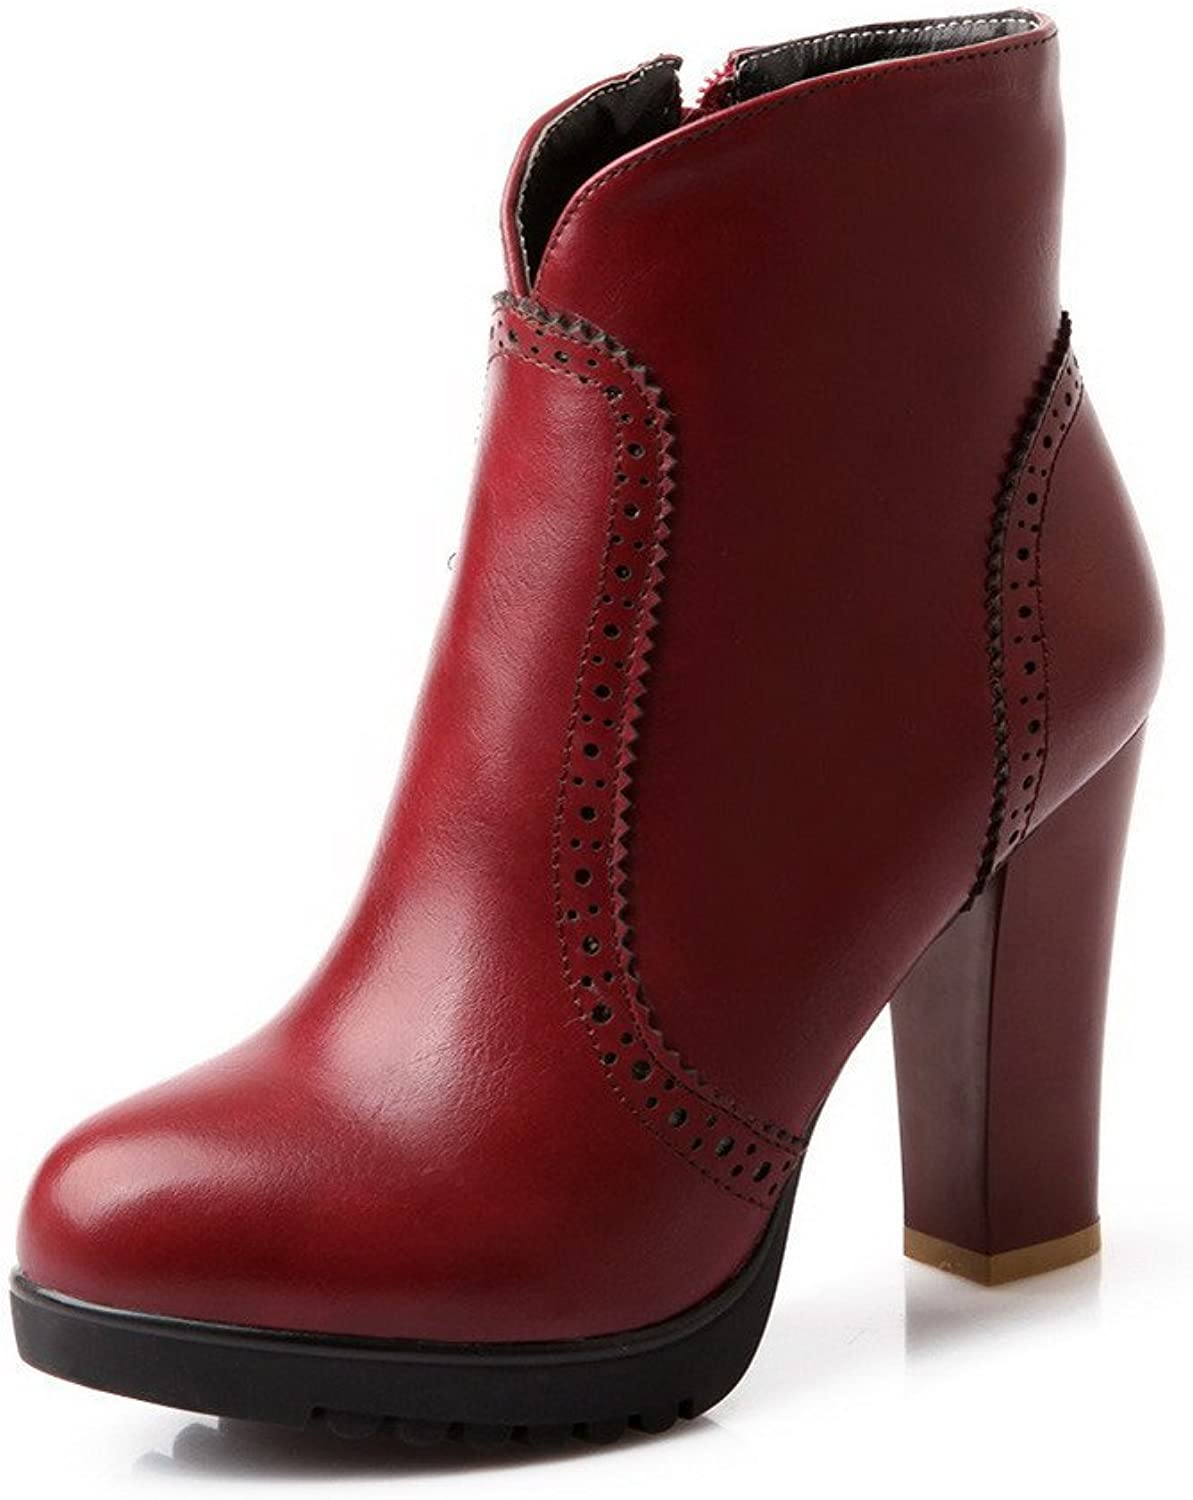 AmoonyFashion Womens Round Closed Toe High Heels Synthetic Solid Boots with Zippers, Red, 7.5 B(M) US